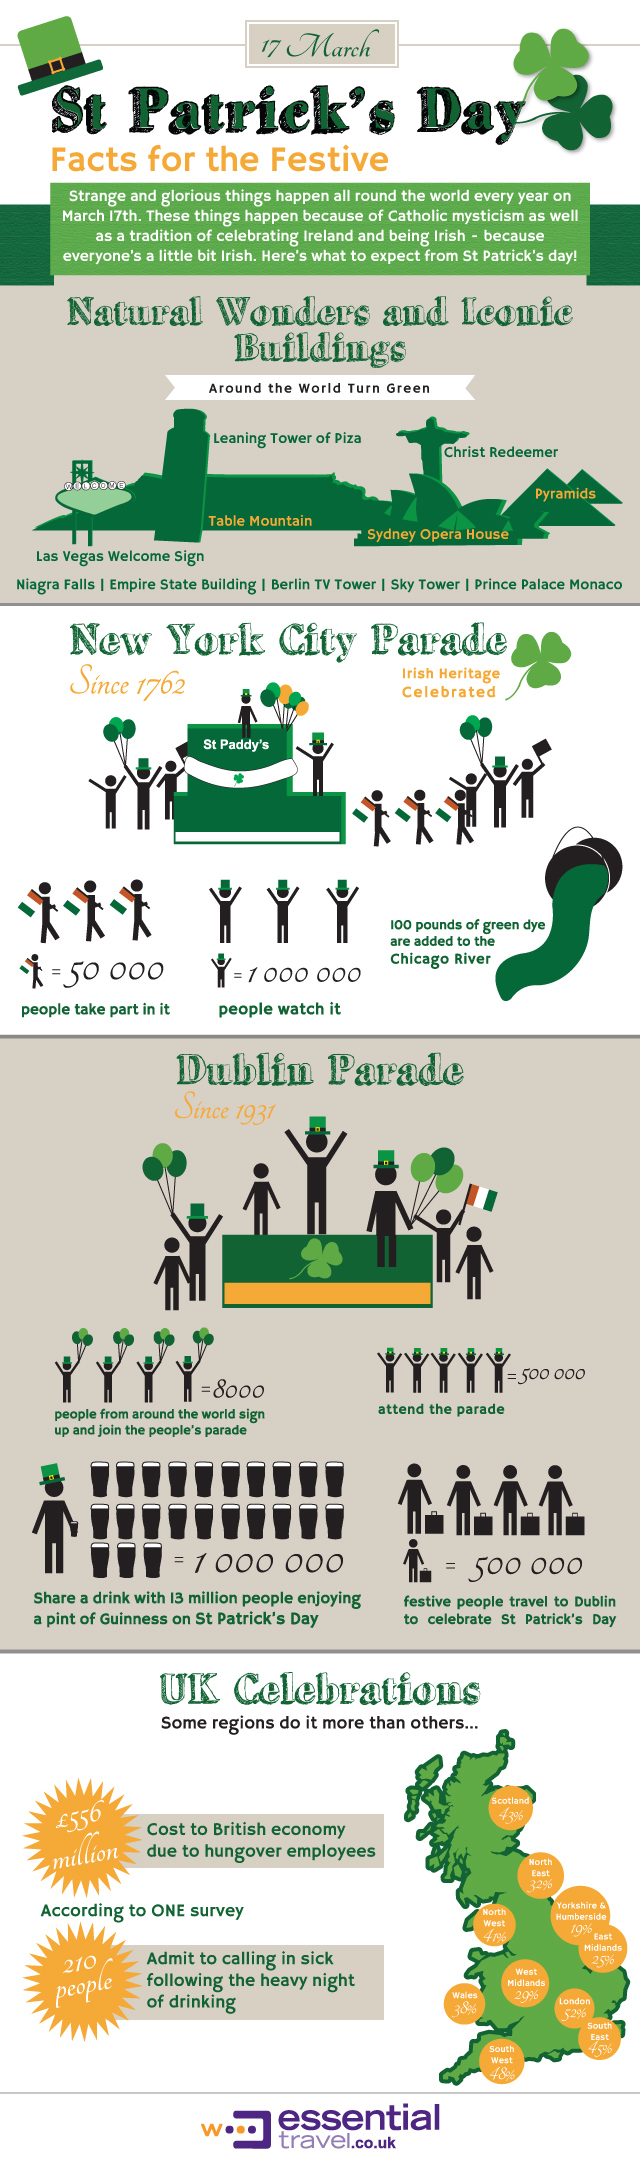 St Paddy's Day Infographic